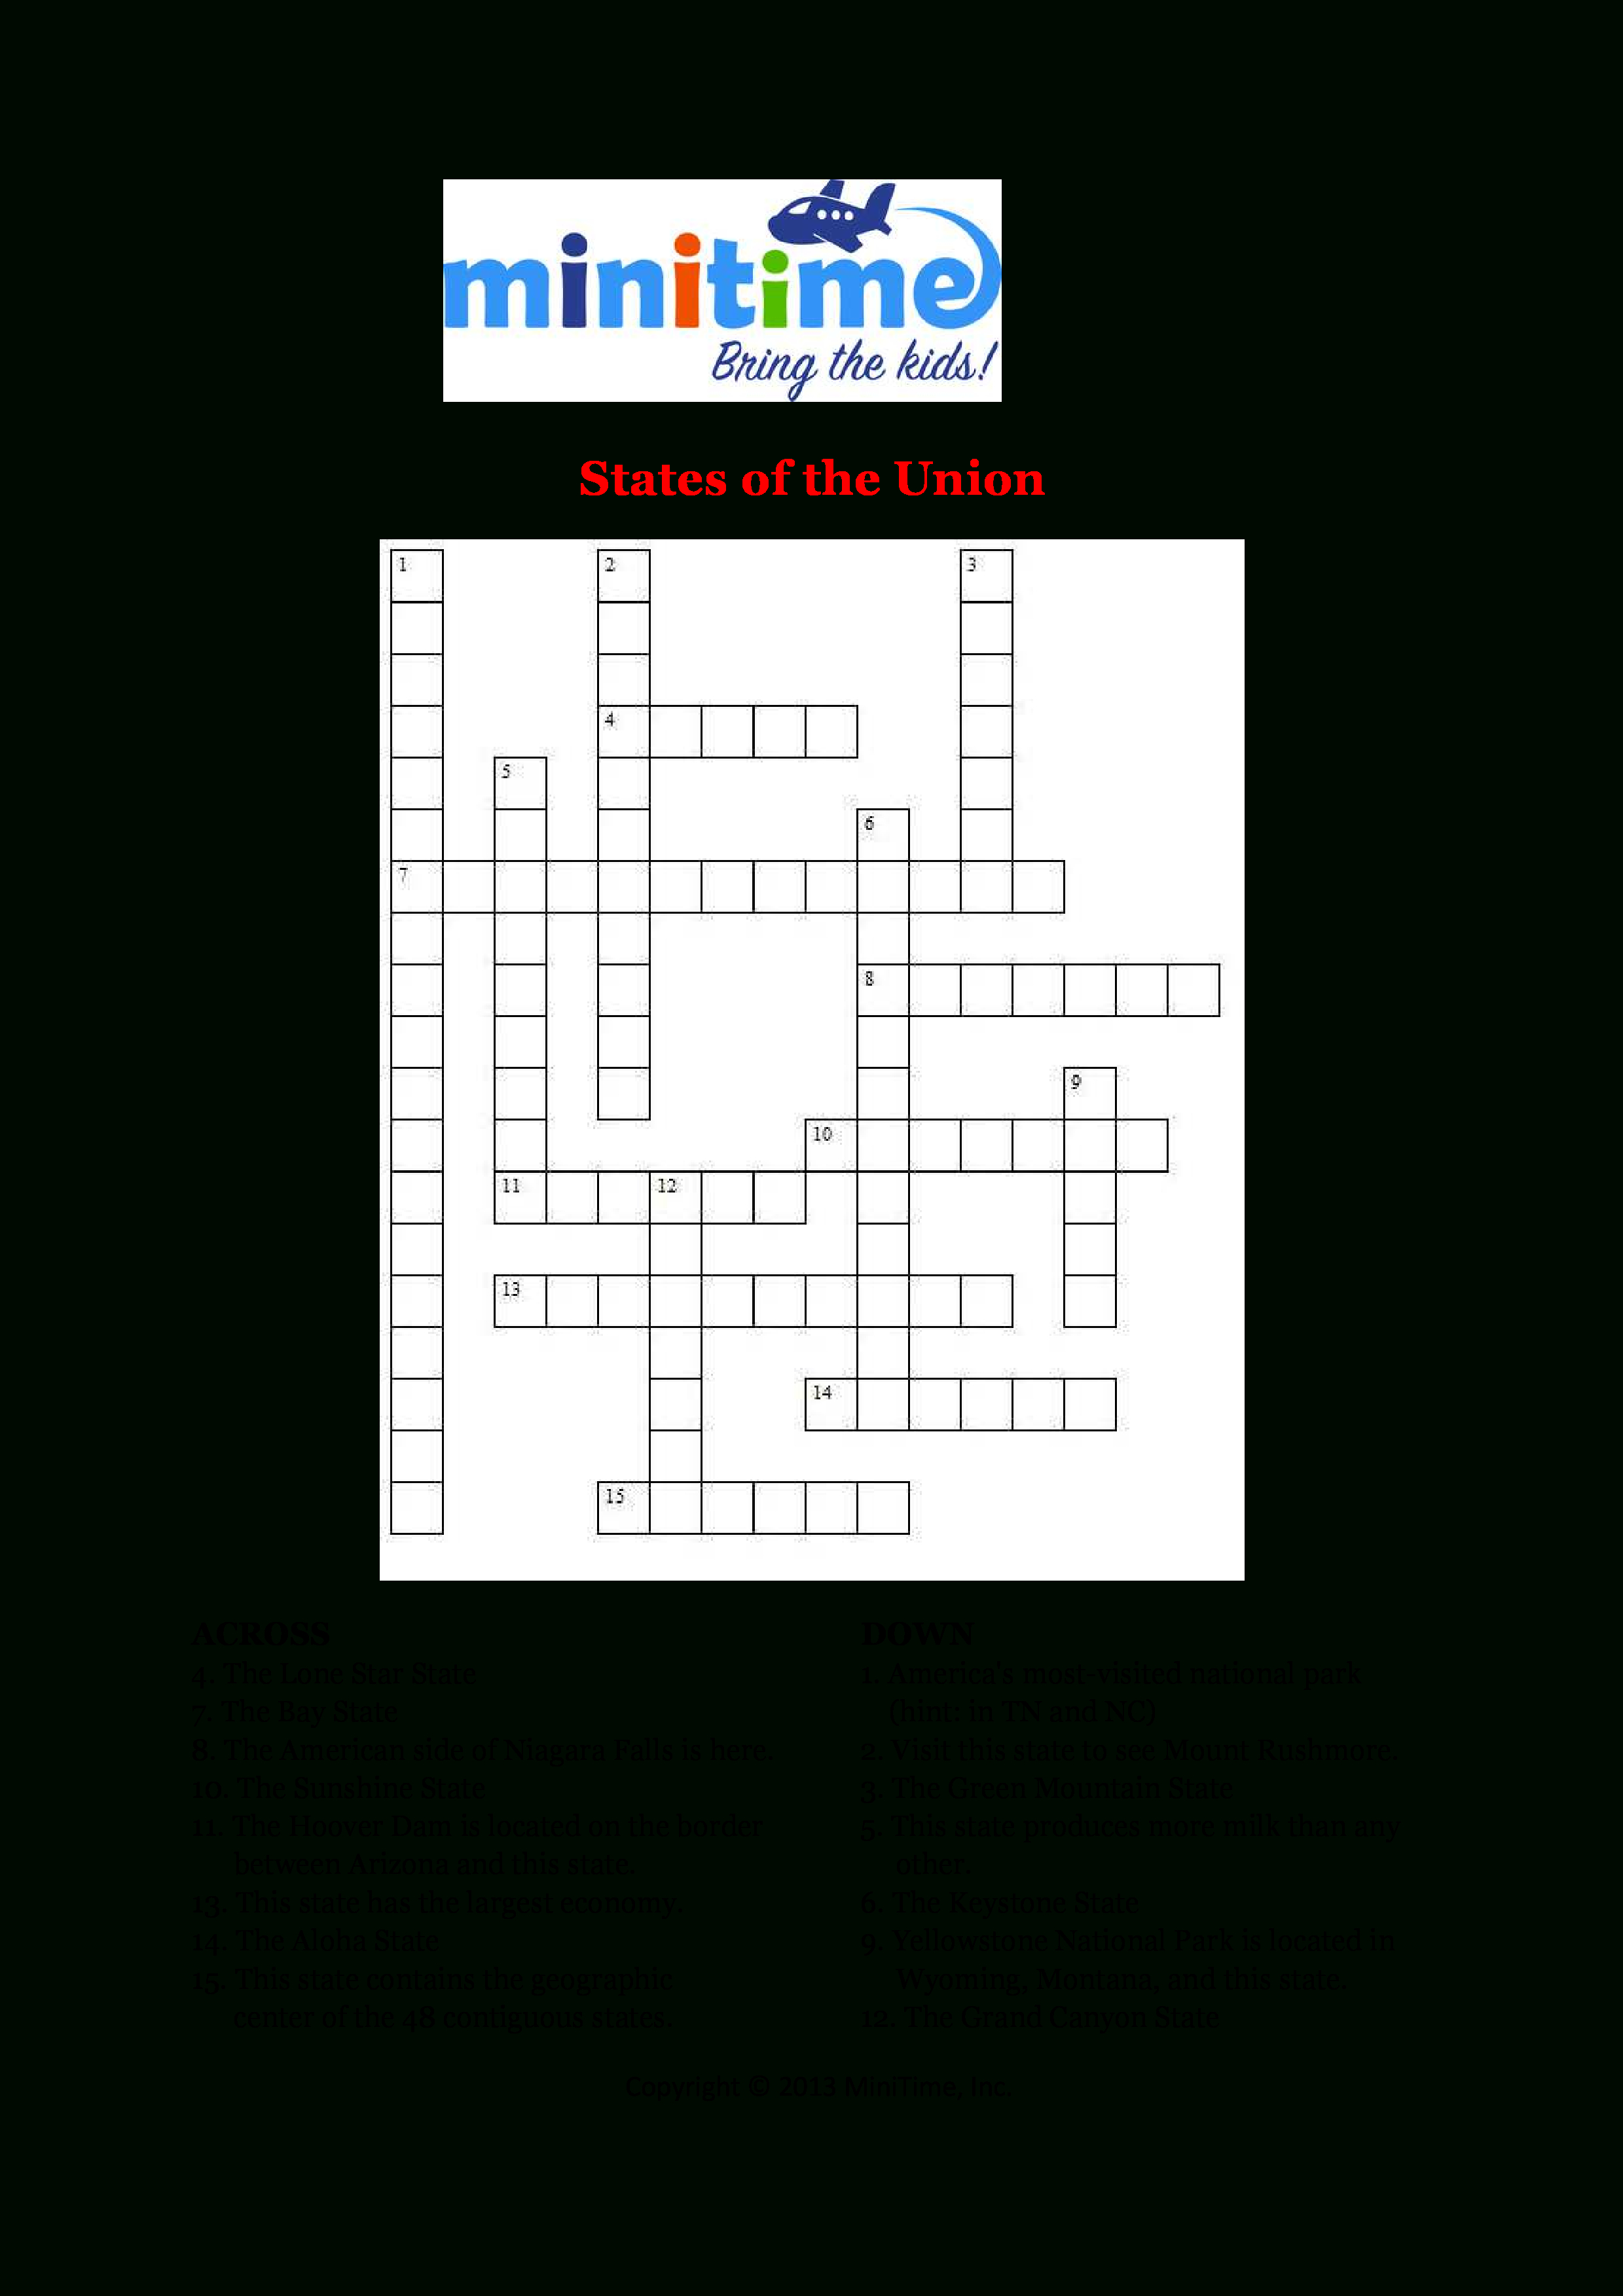 Us States Fun Facts Crossword Puzzles | Free Printable Travel - Printable Car Crossword Puzzles